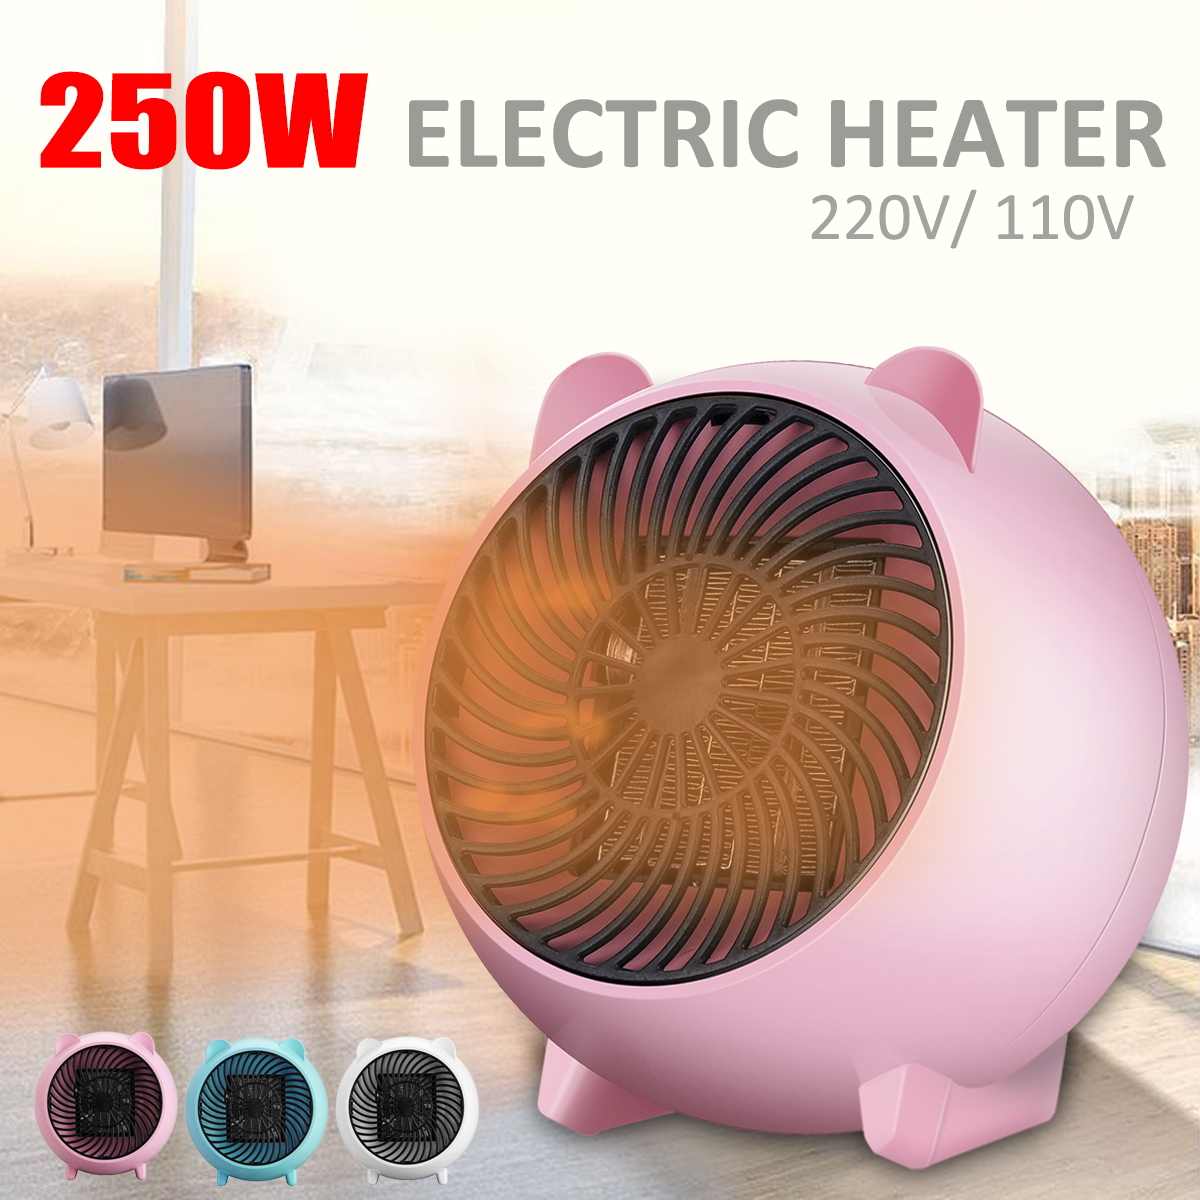 250W Mini Electric Heater Portable Space Home Office Winter Warmer Fan Quite Air Heater New